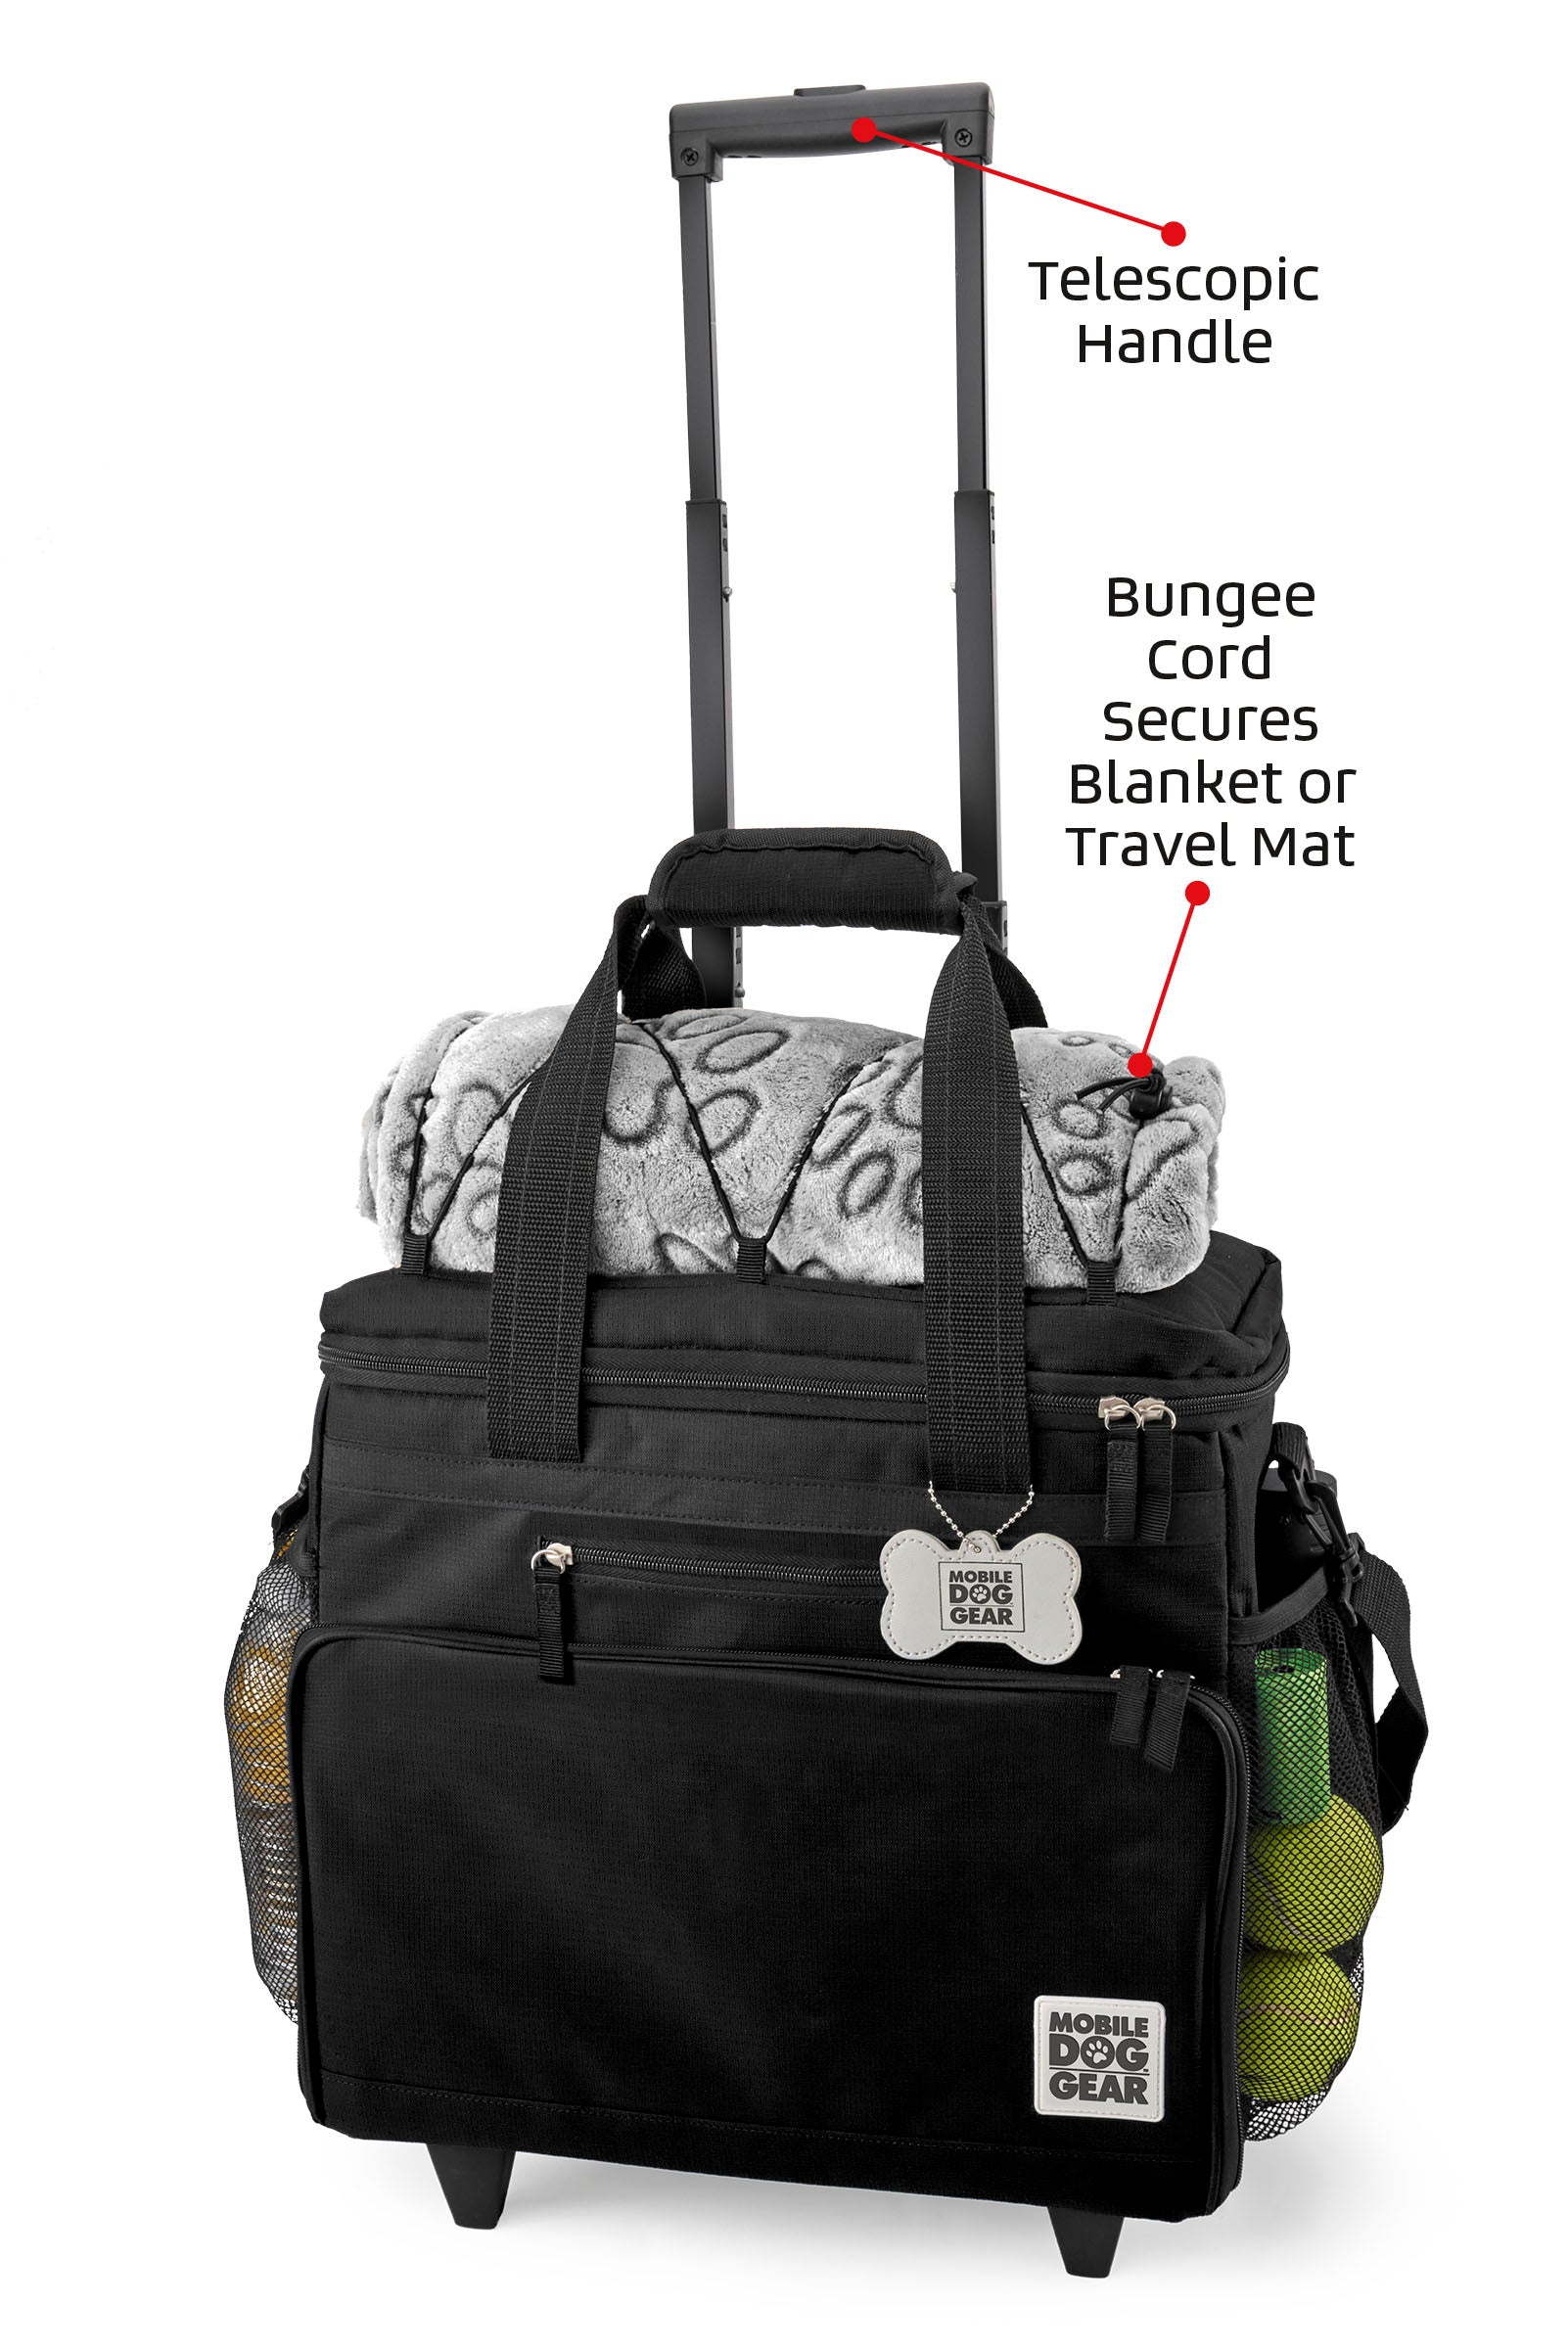 Bundle: ODG Day/Night Walking Bag (Black), ODG Rolling Week Away Bag